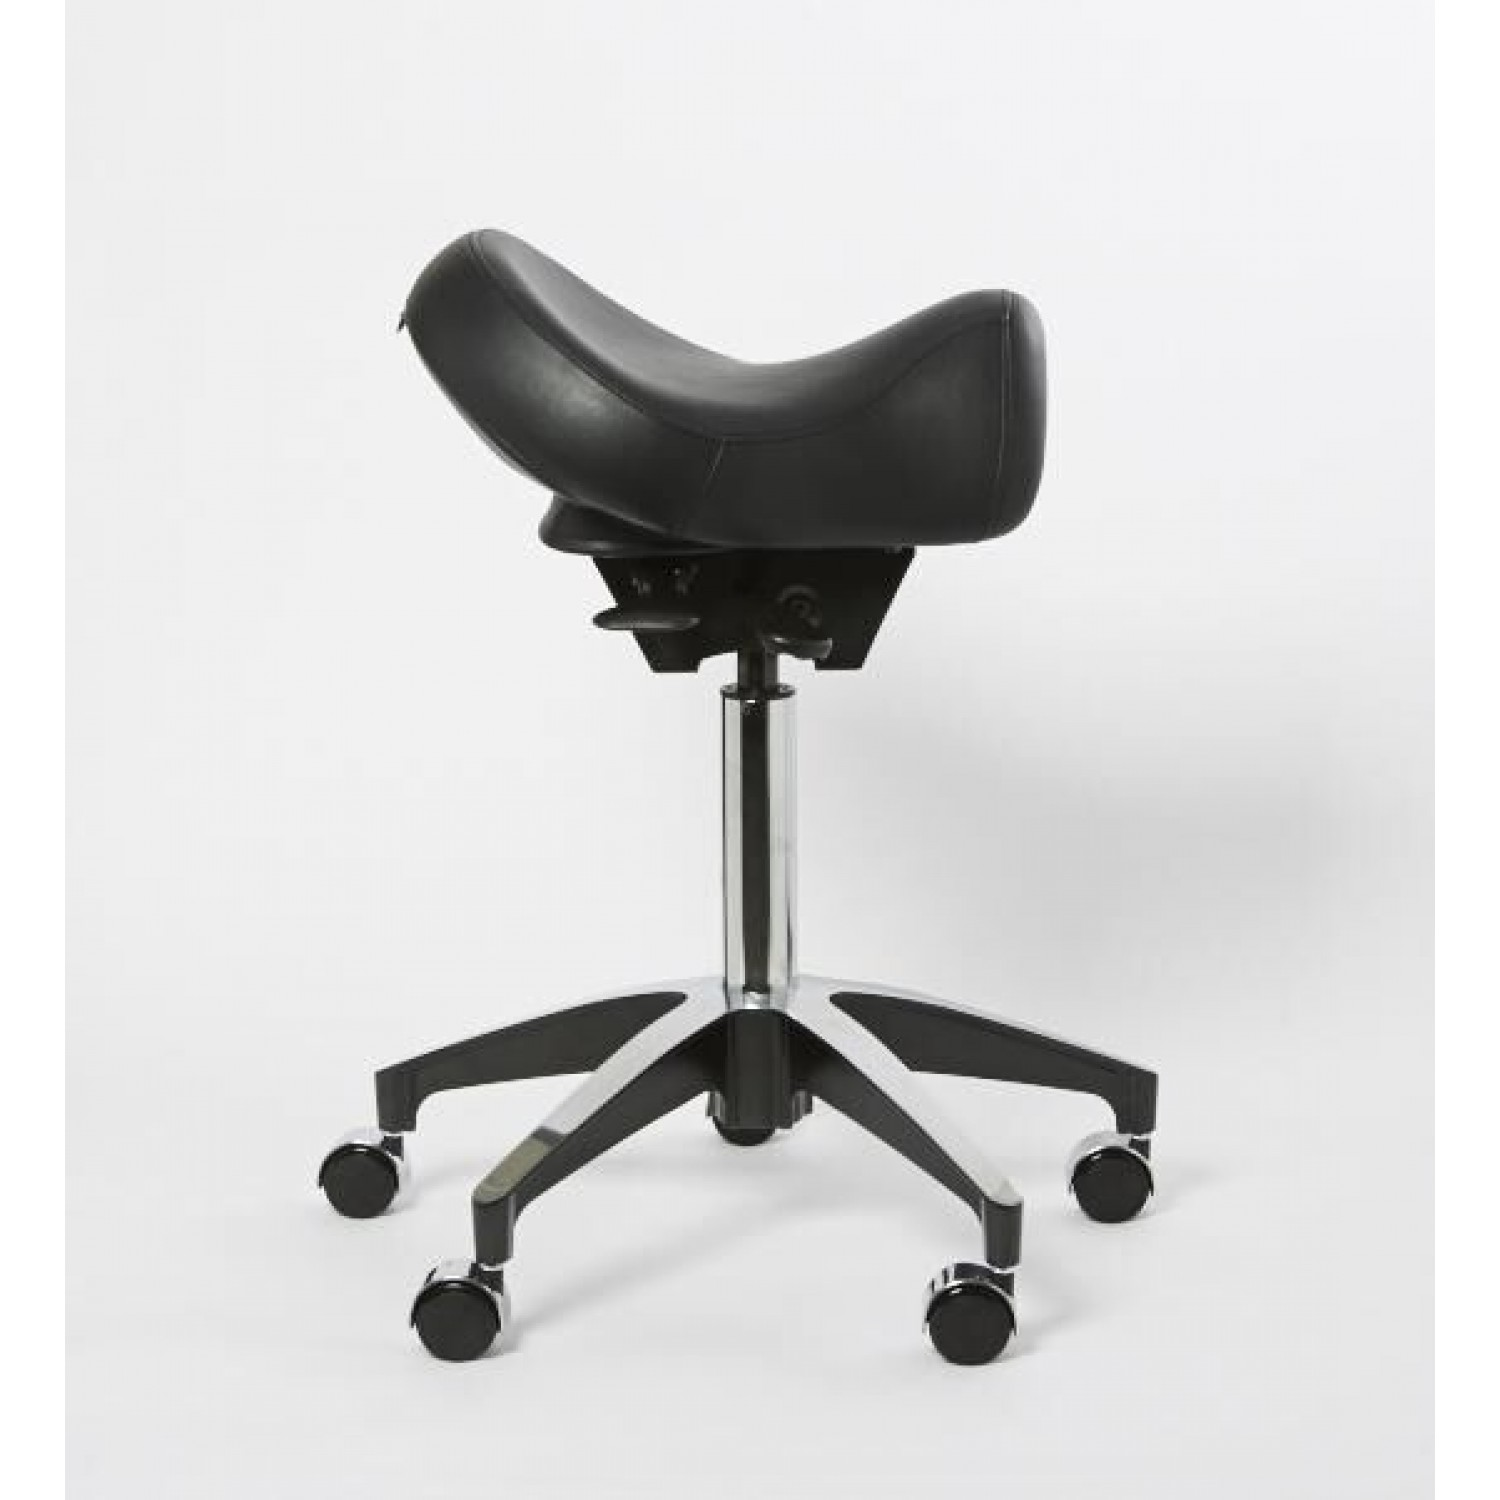 Saddle Office Seat Chair Stool Office Furniture Since 1990